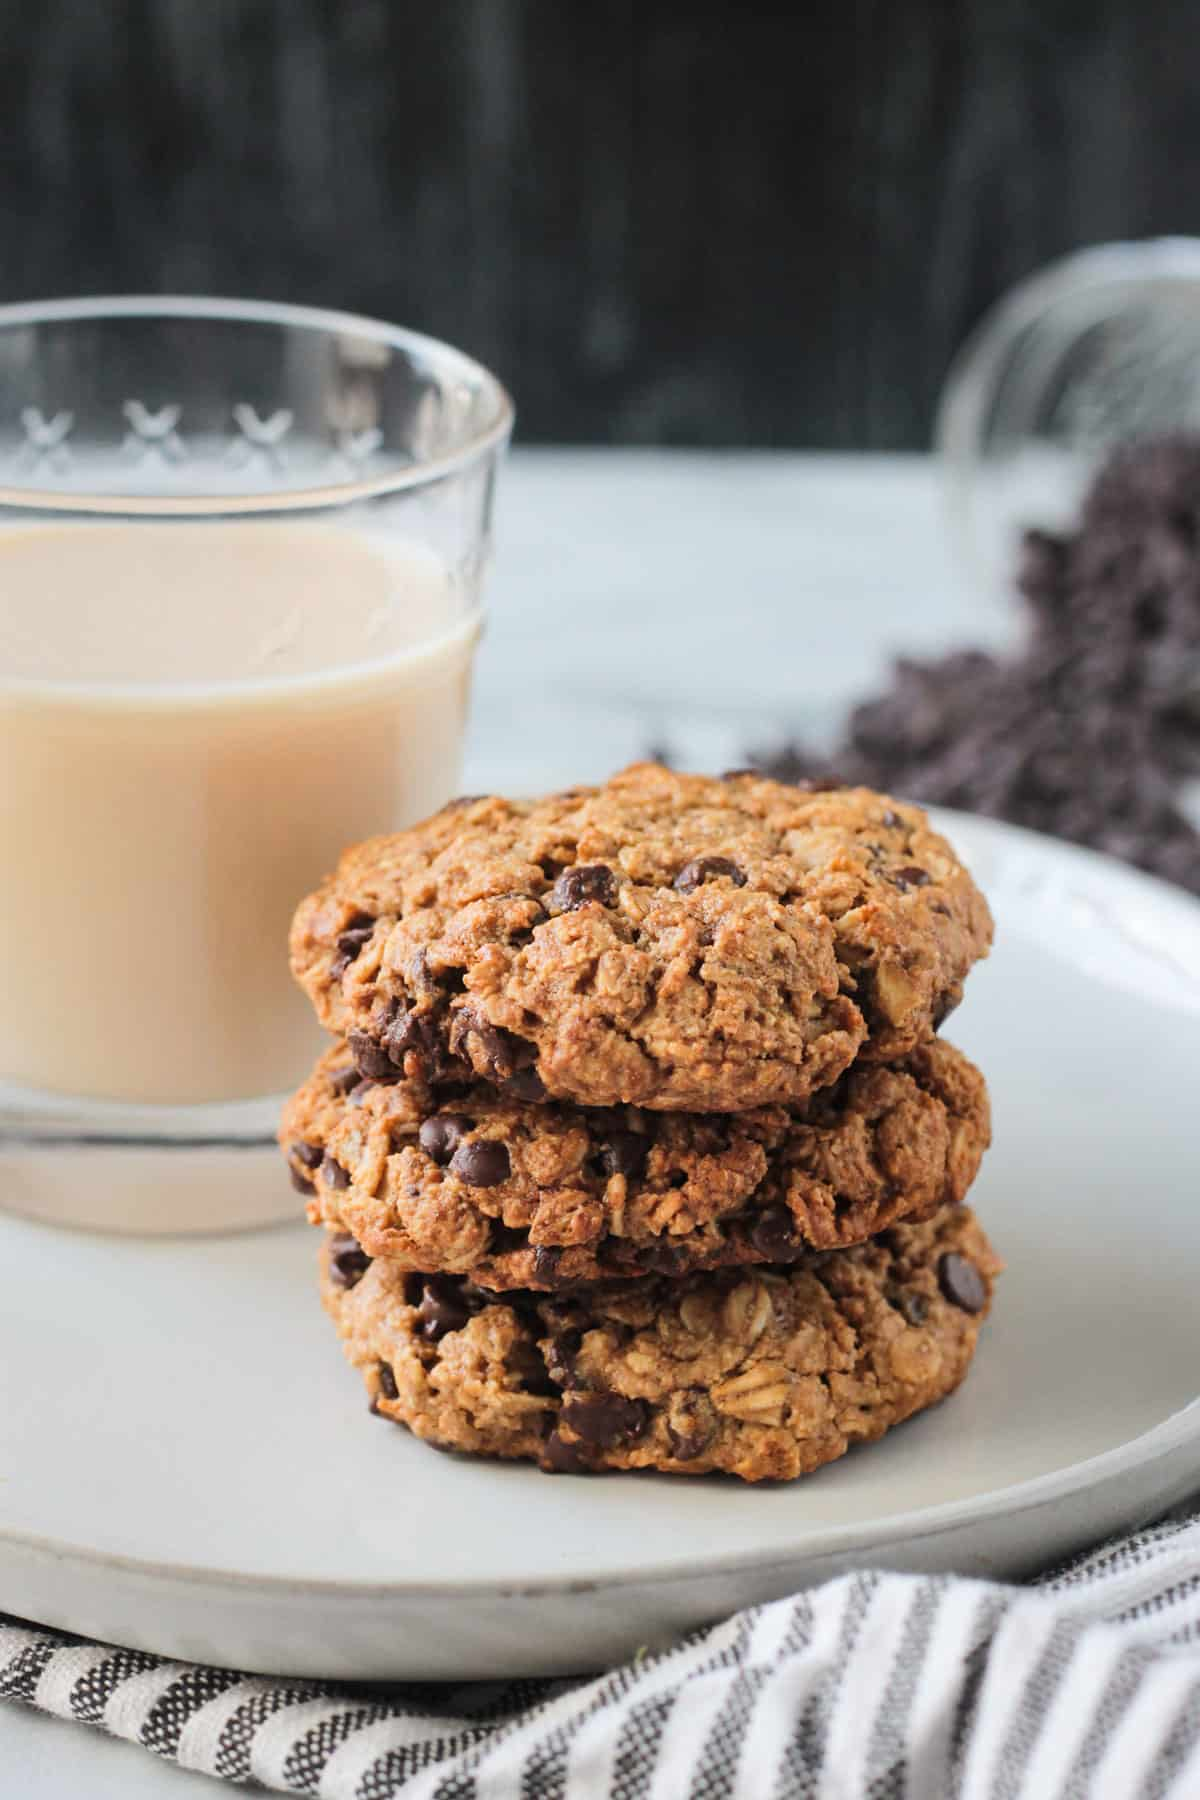 Stack of 3 cookies next to a glass of milk.